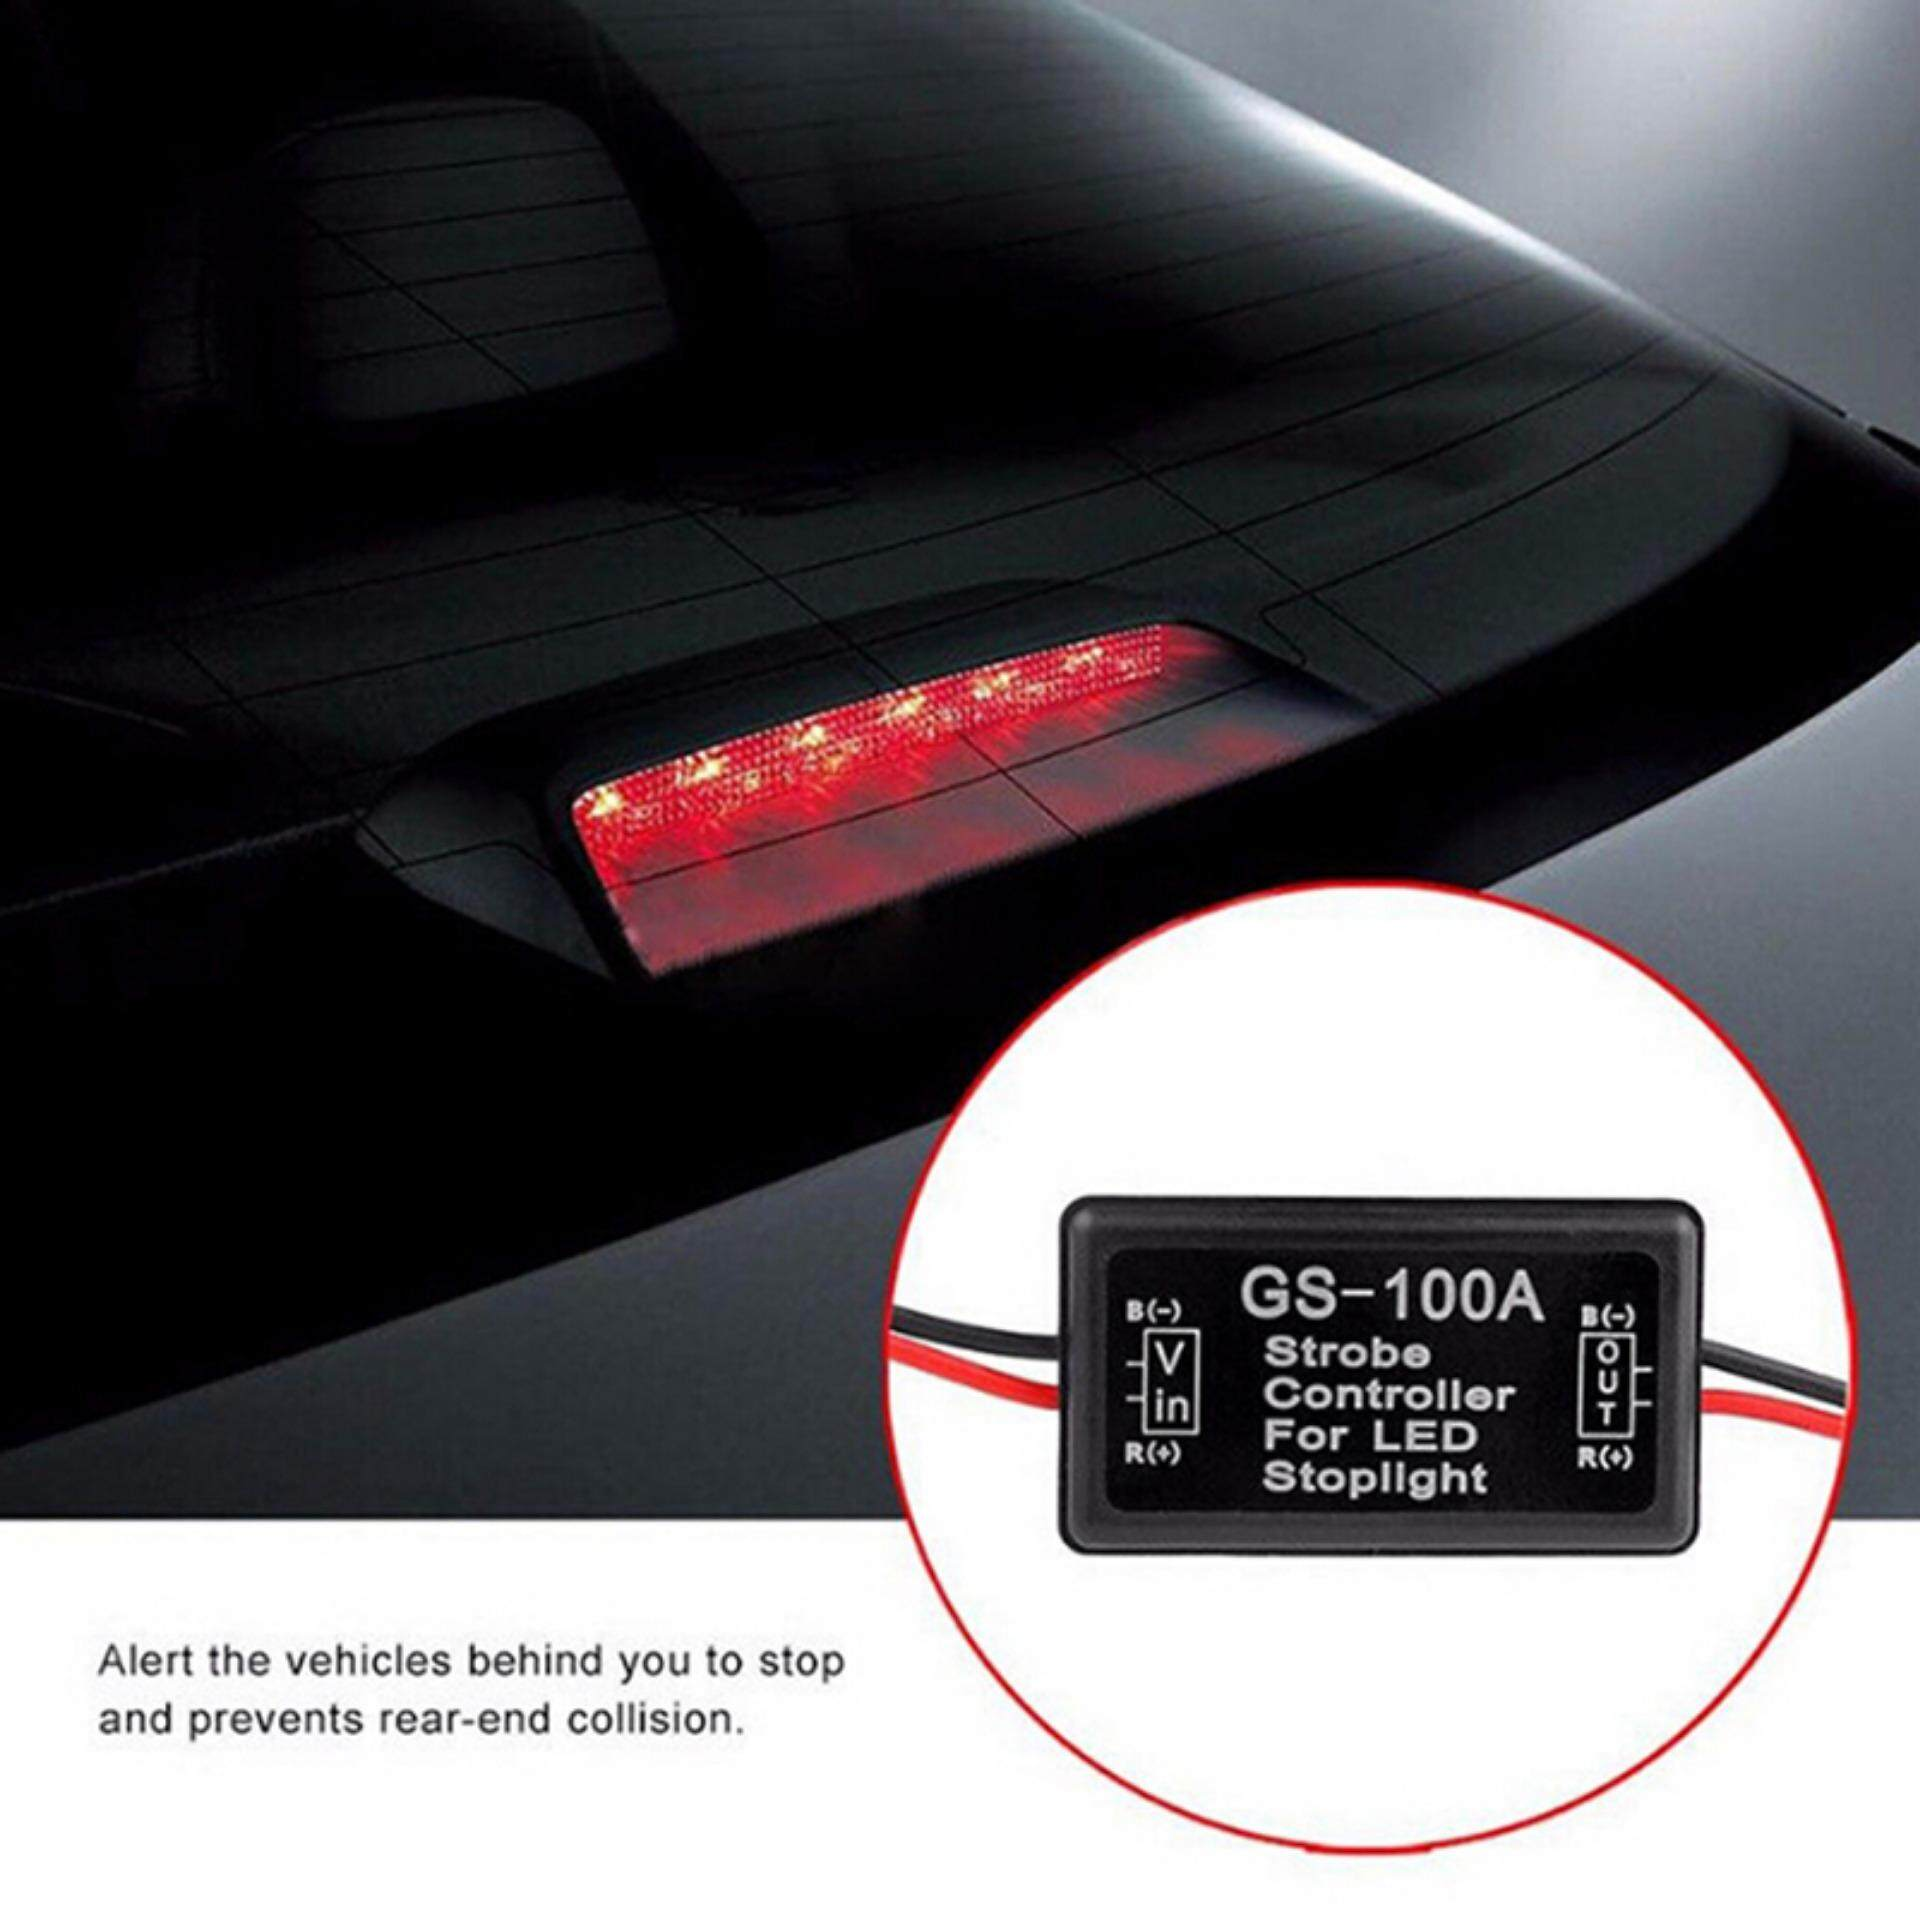 Sissi Vehicle Car Gs-100a Led Brake Stop Light Strobe Flash Module Controller Box By Sissi Princess.